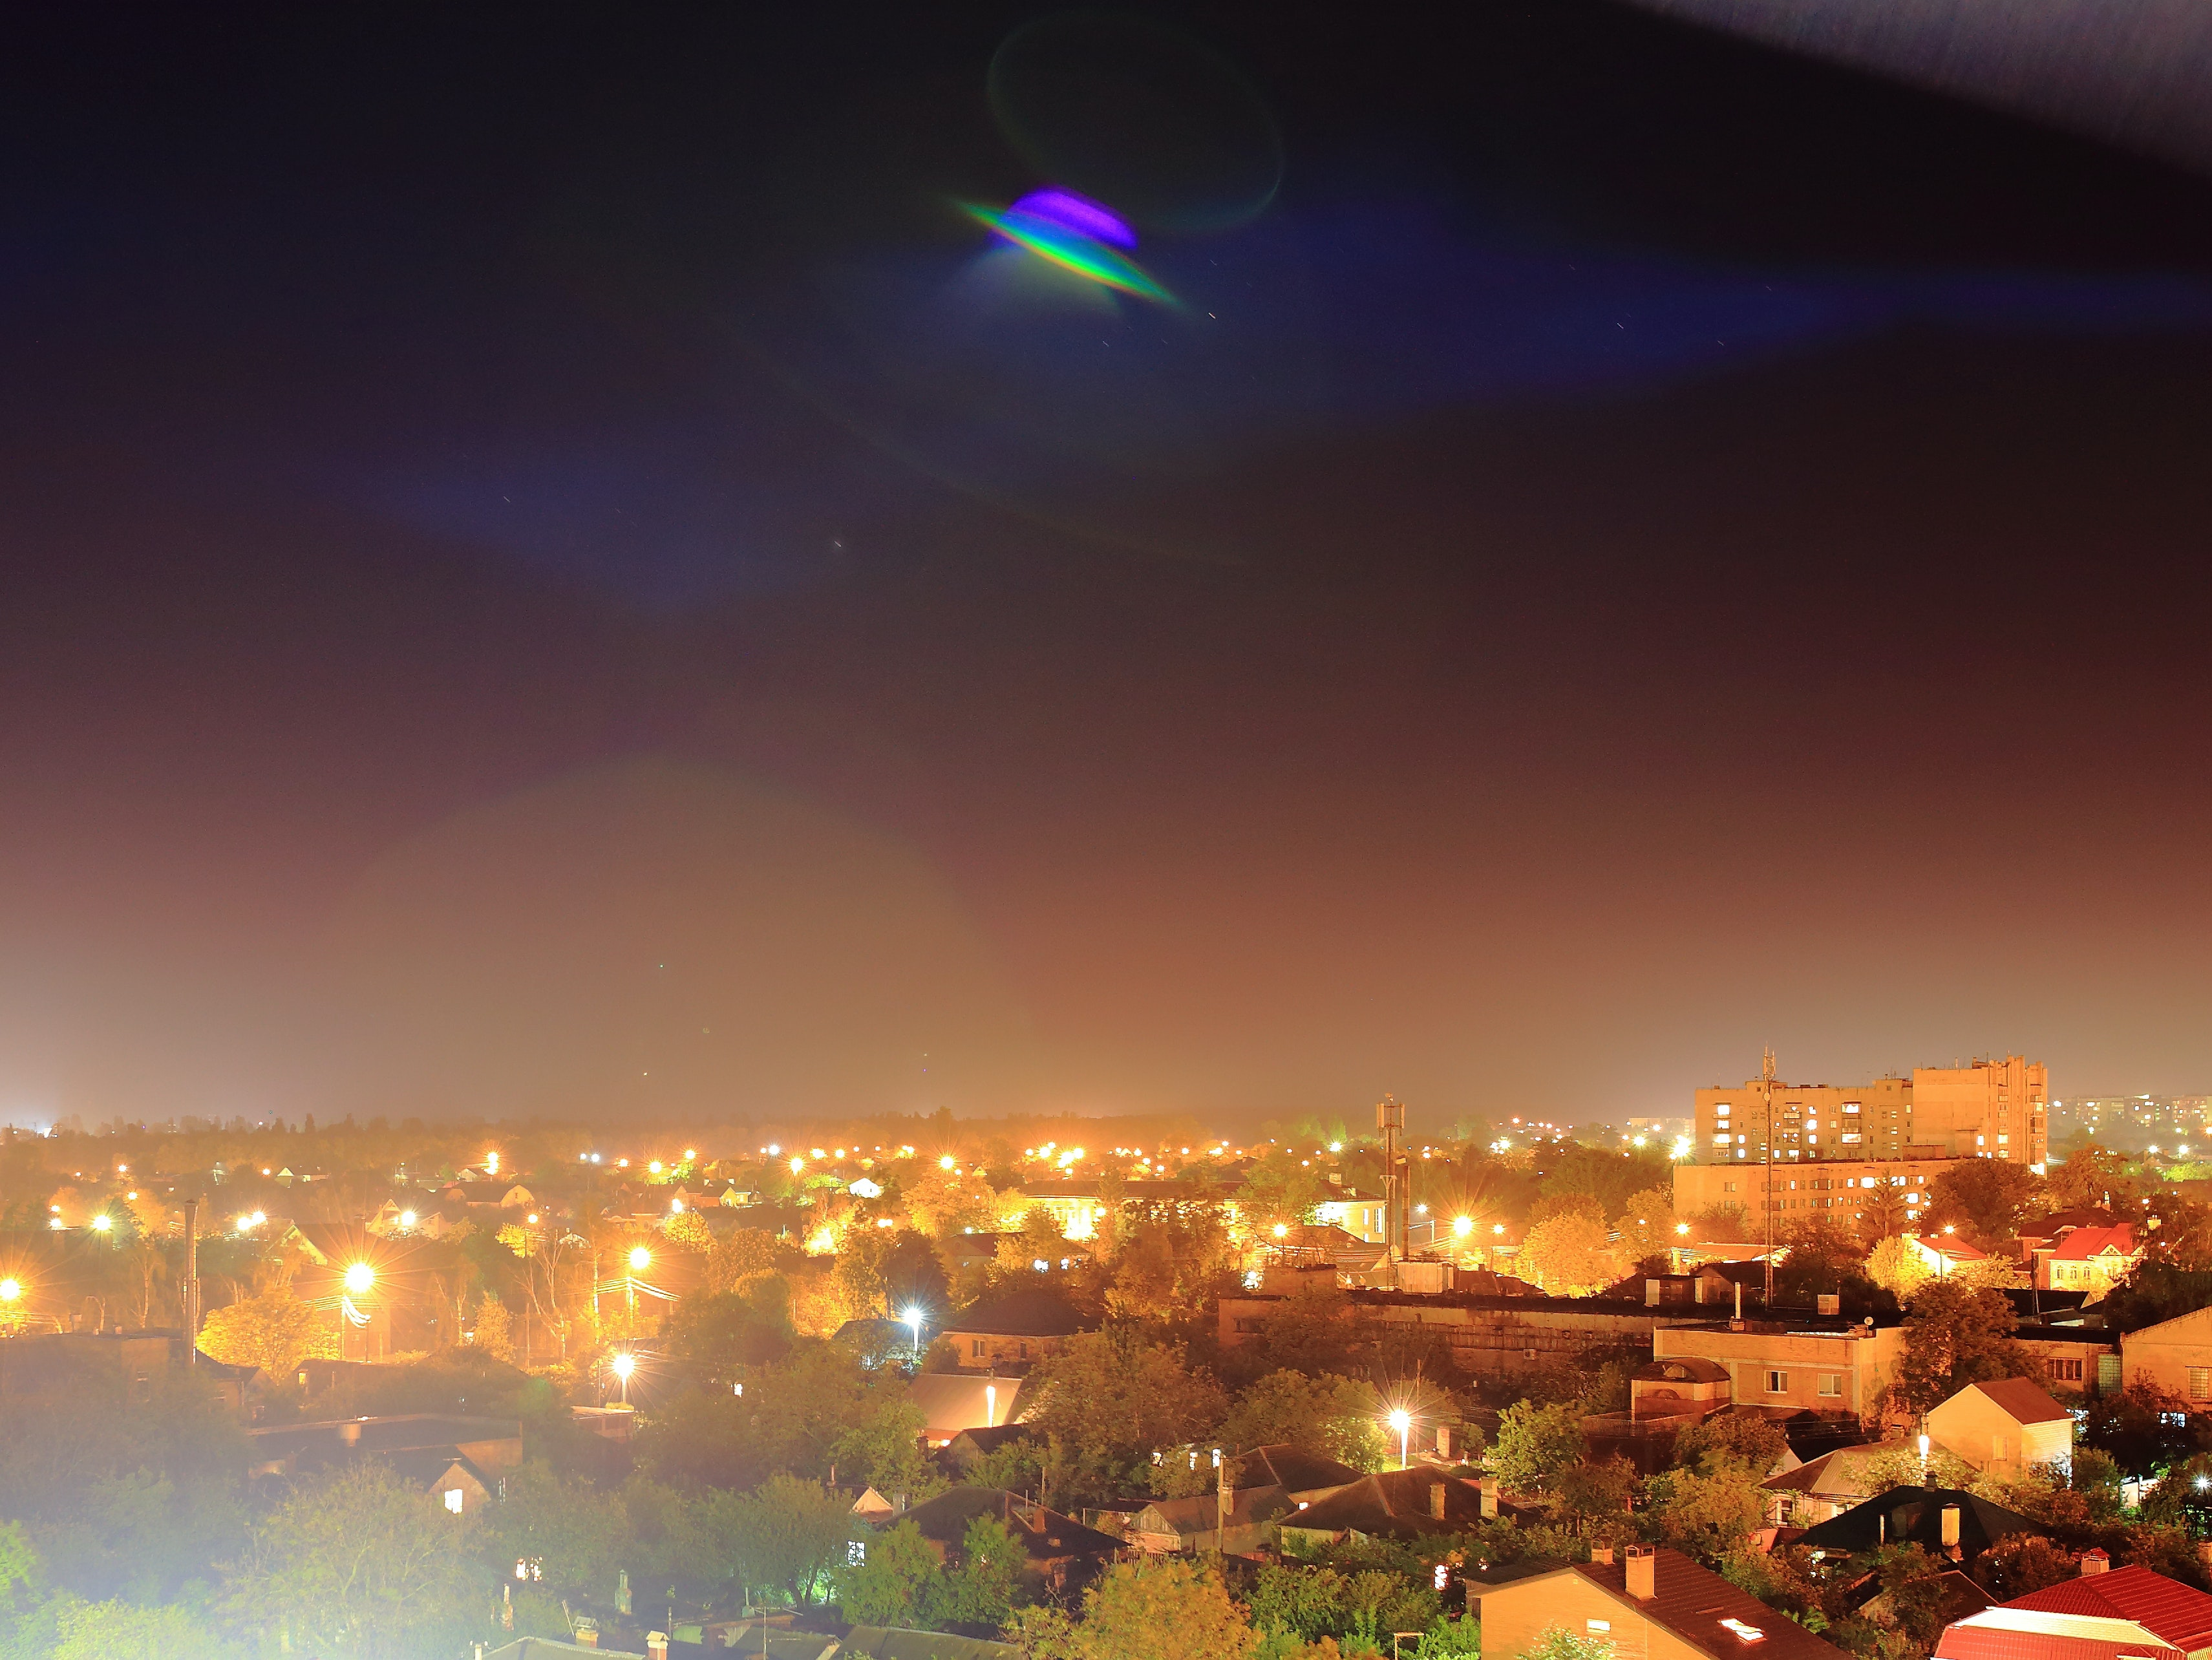 Here's the Declassified Protocol for Reporting UFO Sightings